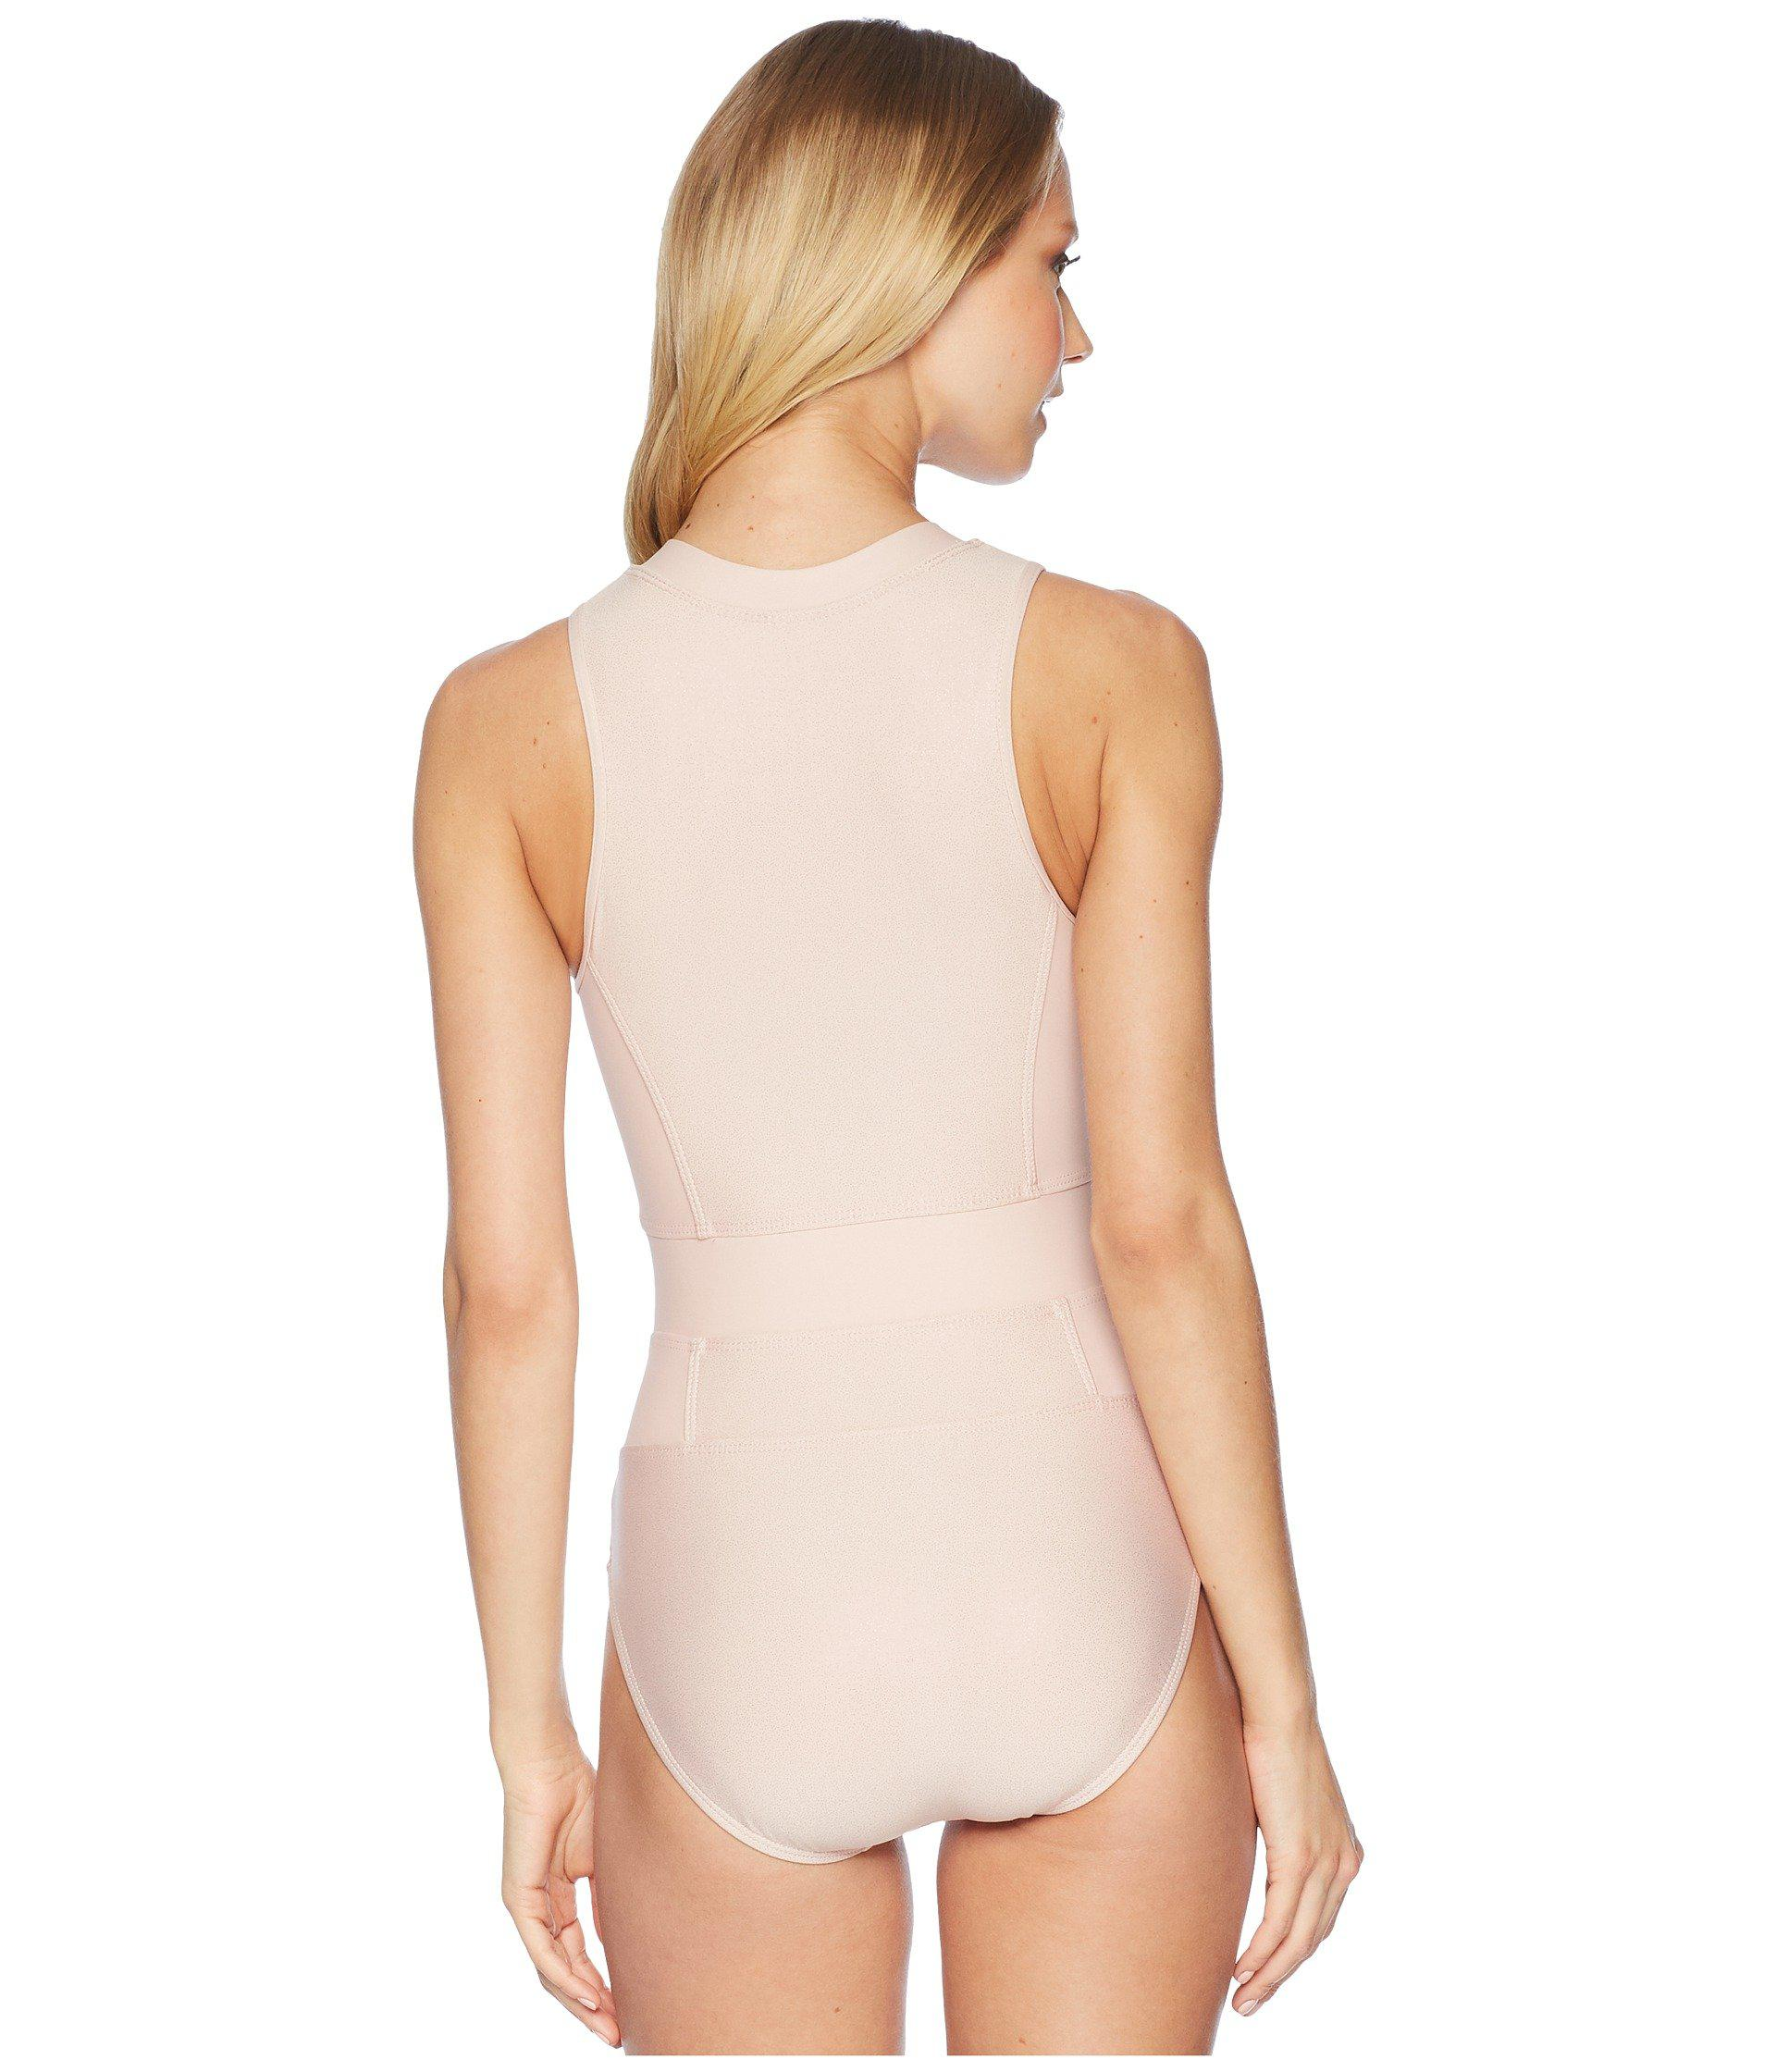 18a3d661f3 Lyst - Next By Athena Feeling Fine Malibu Zip One-piece